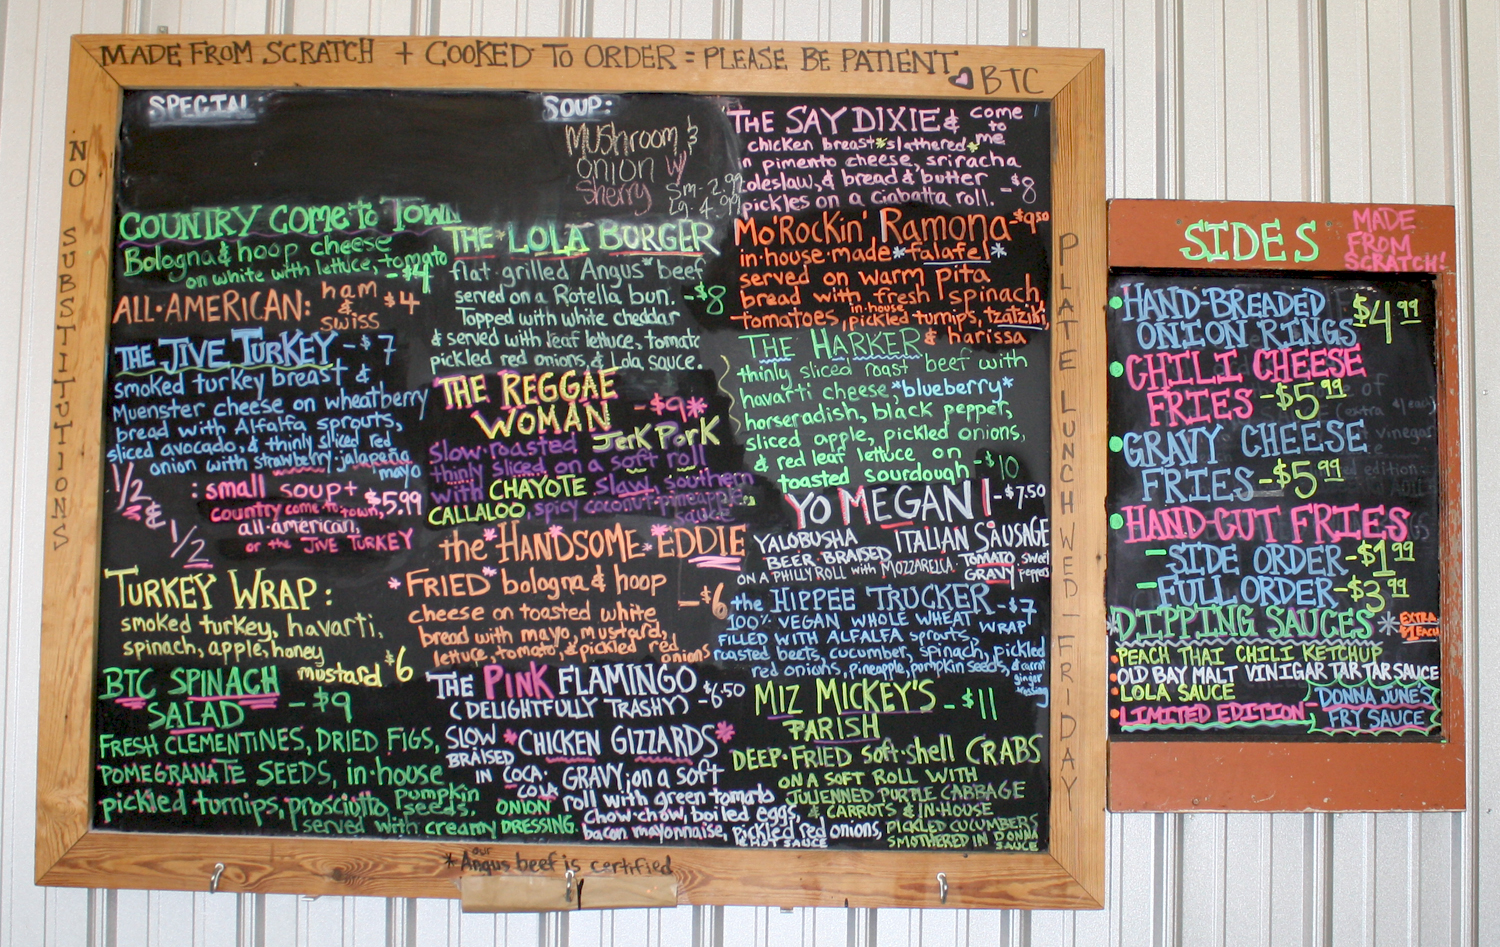 Chef Dixie Grimes' menu at B.T.C. Old Fashioned Grocery in Water Valley. Photo by Jeff McVay